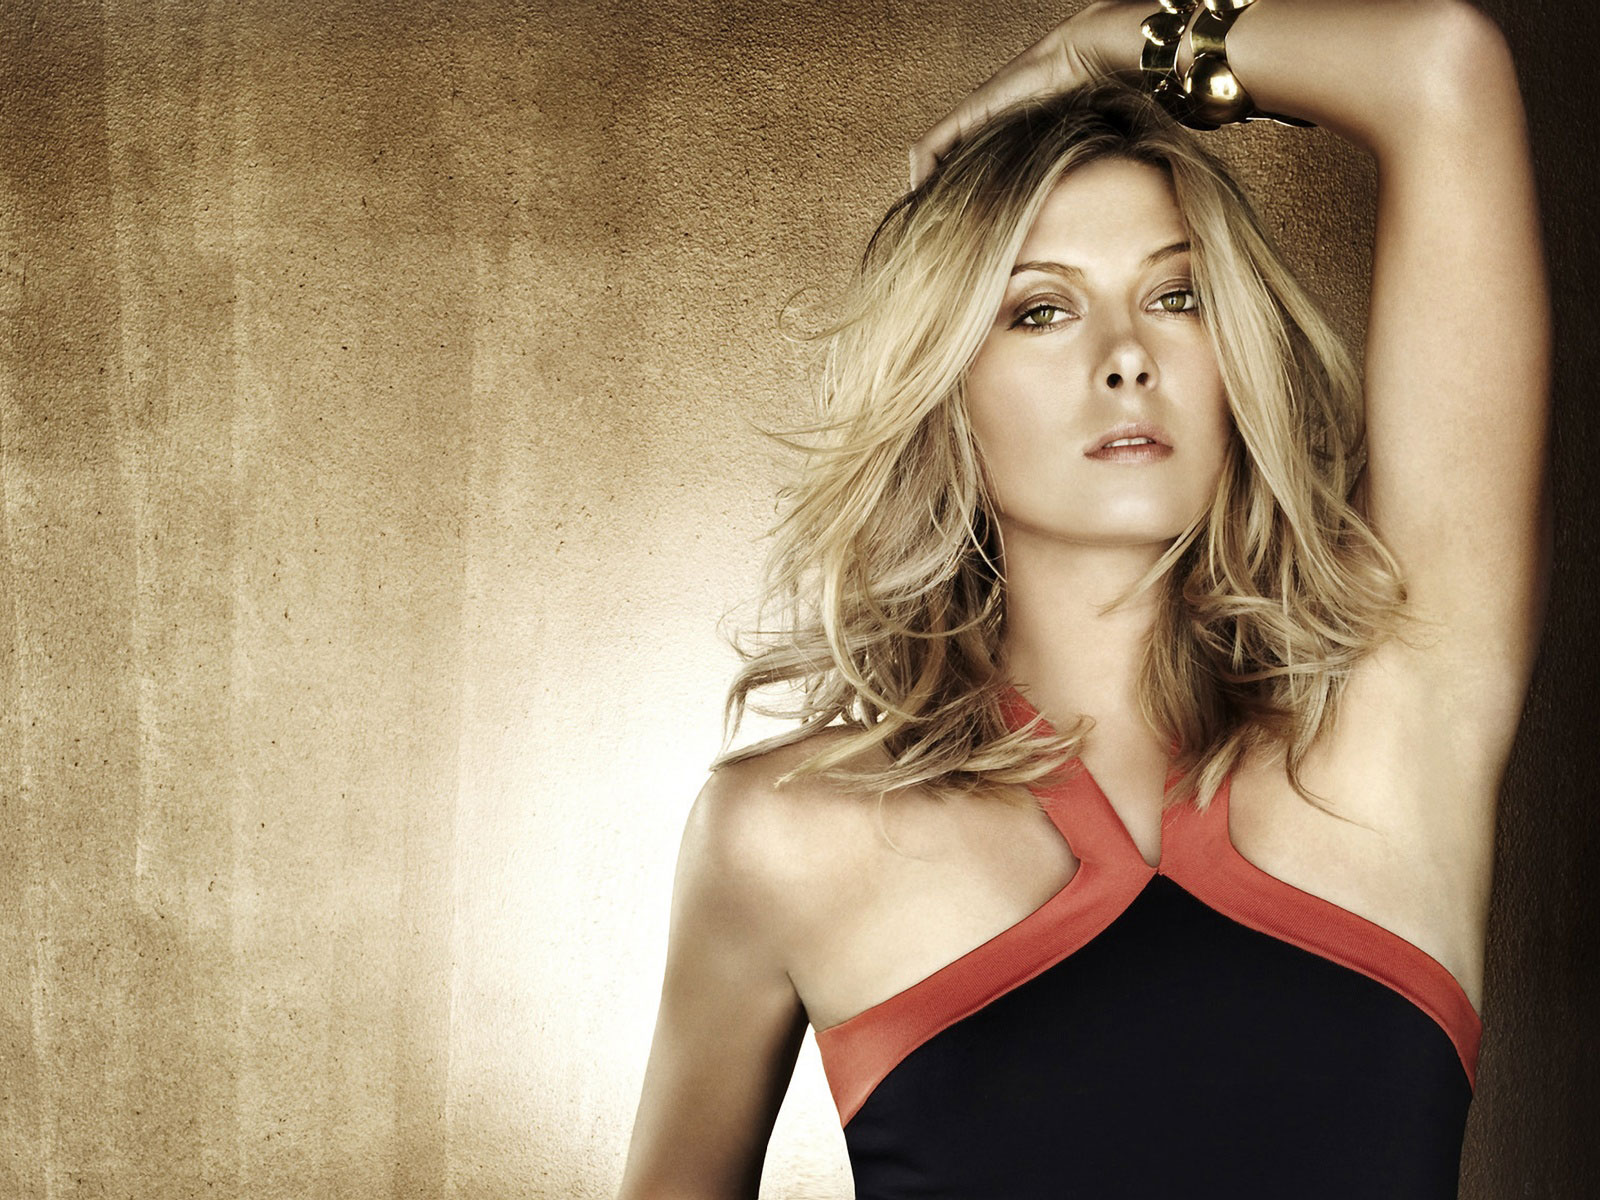 Maria Sharapova 10 220.11 Kb